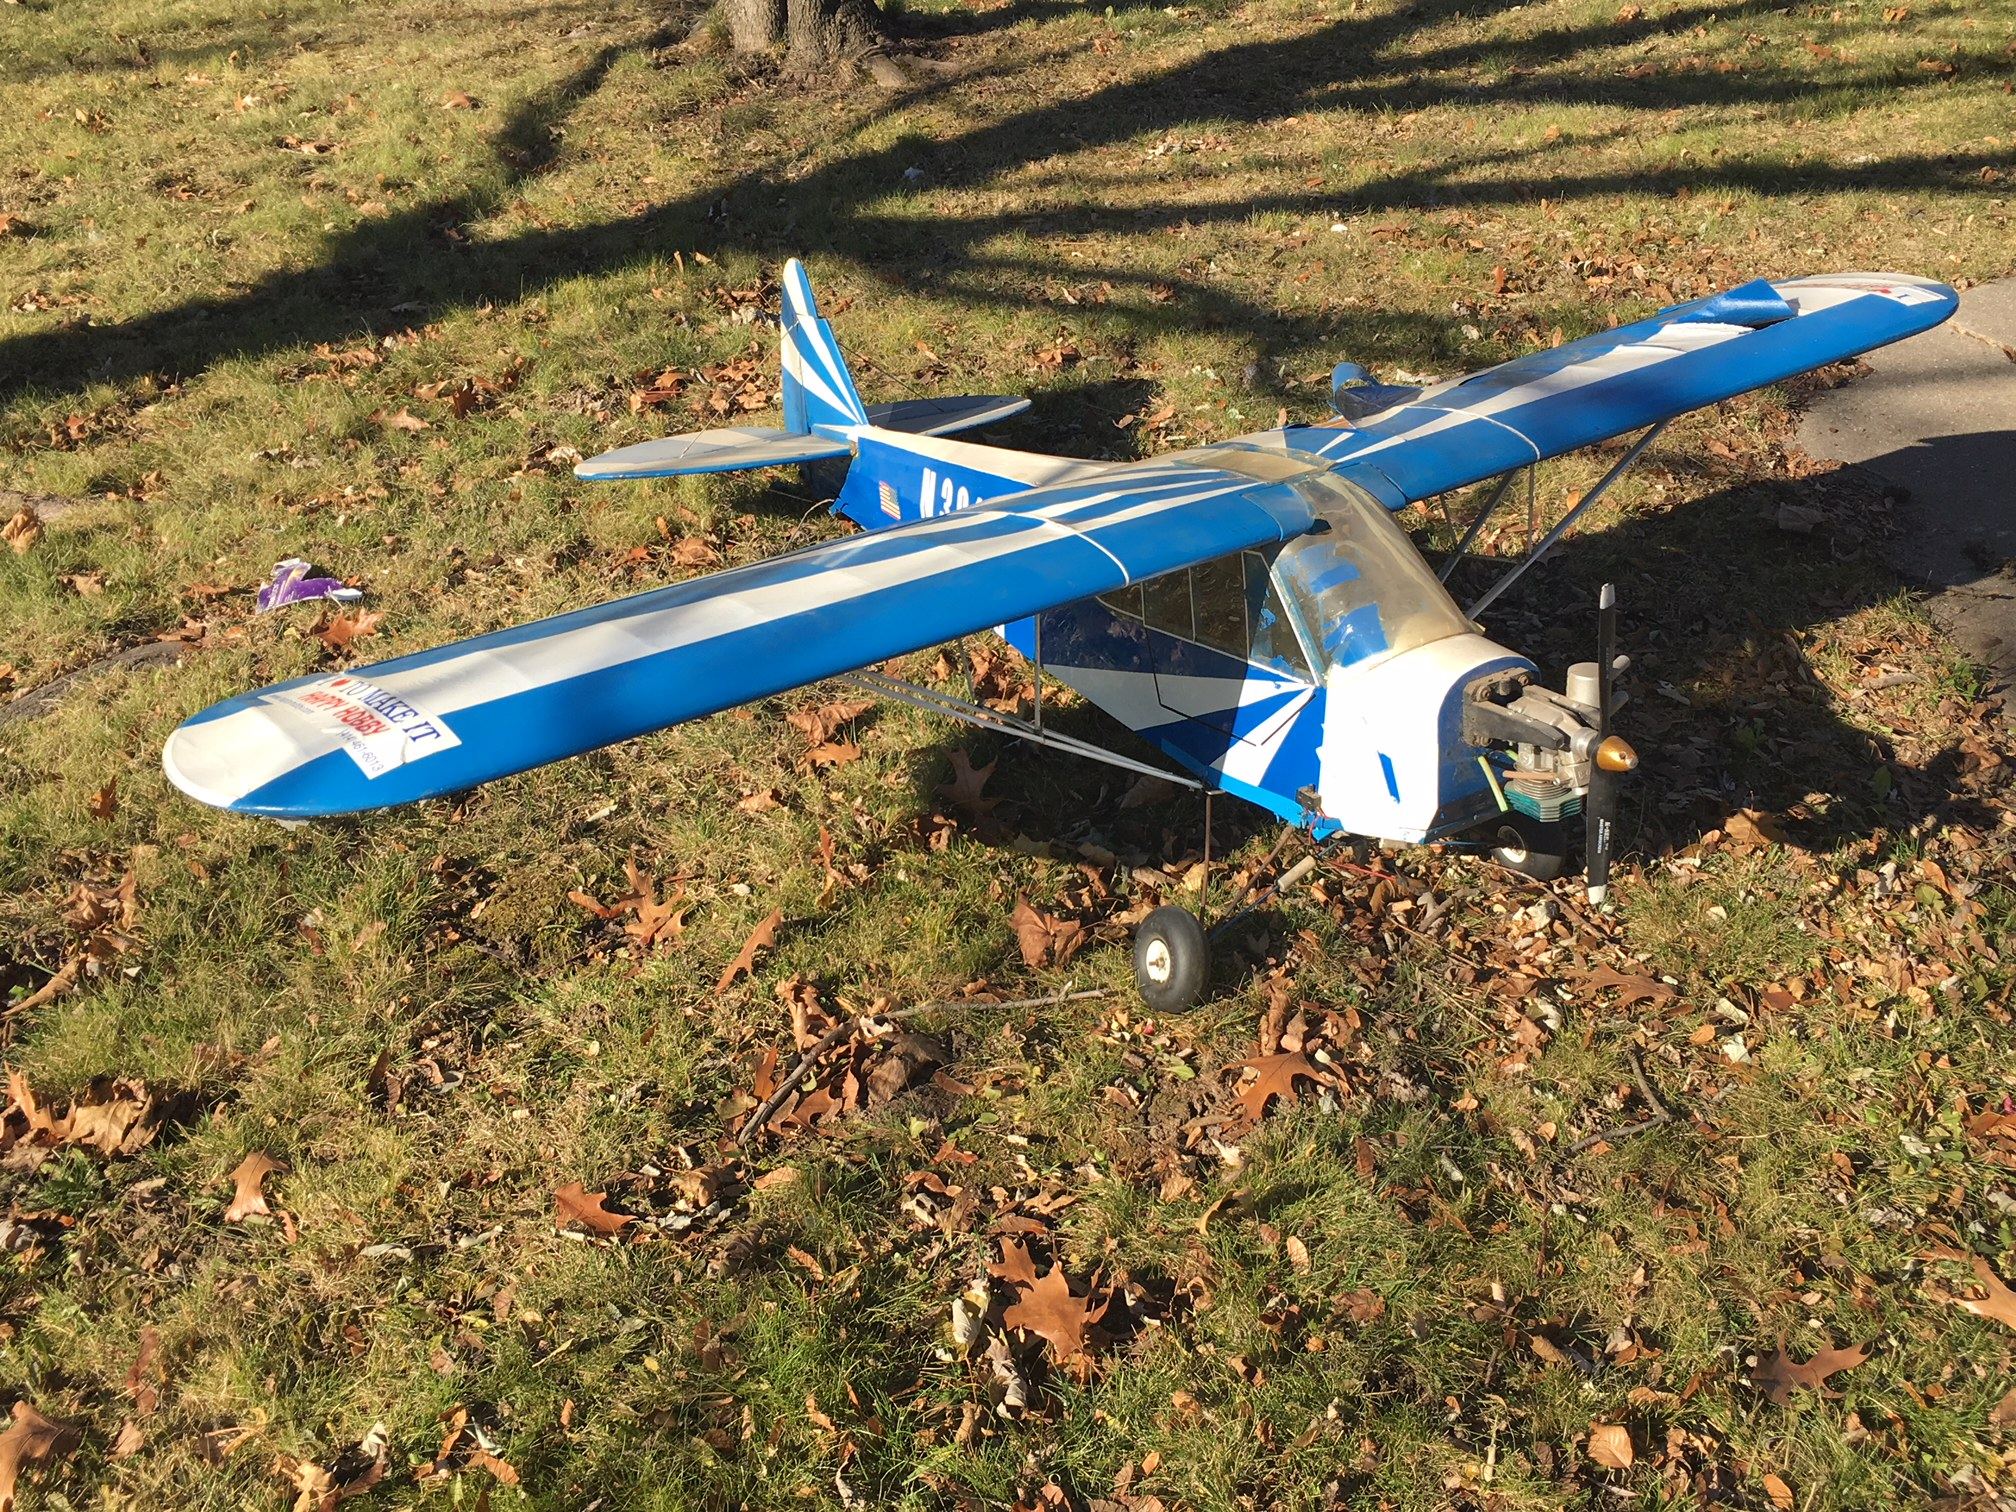 1/4 Scale Cubs - Sig and Balsa USA, Rescue and Re-Build